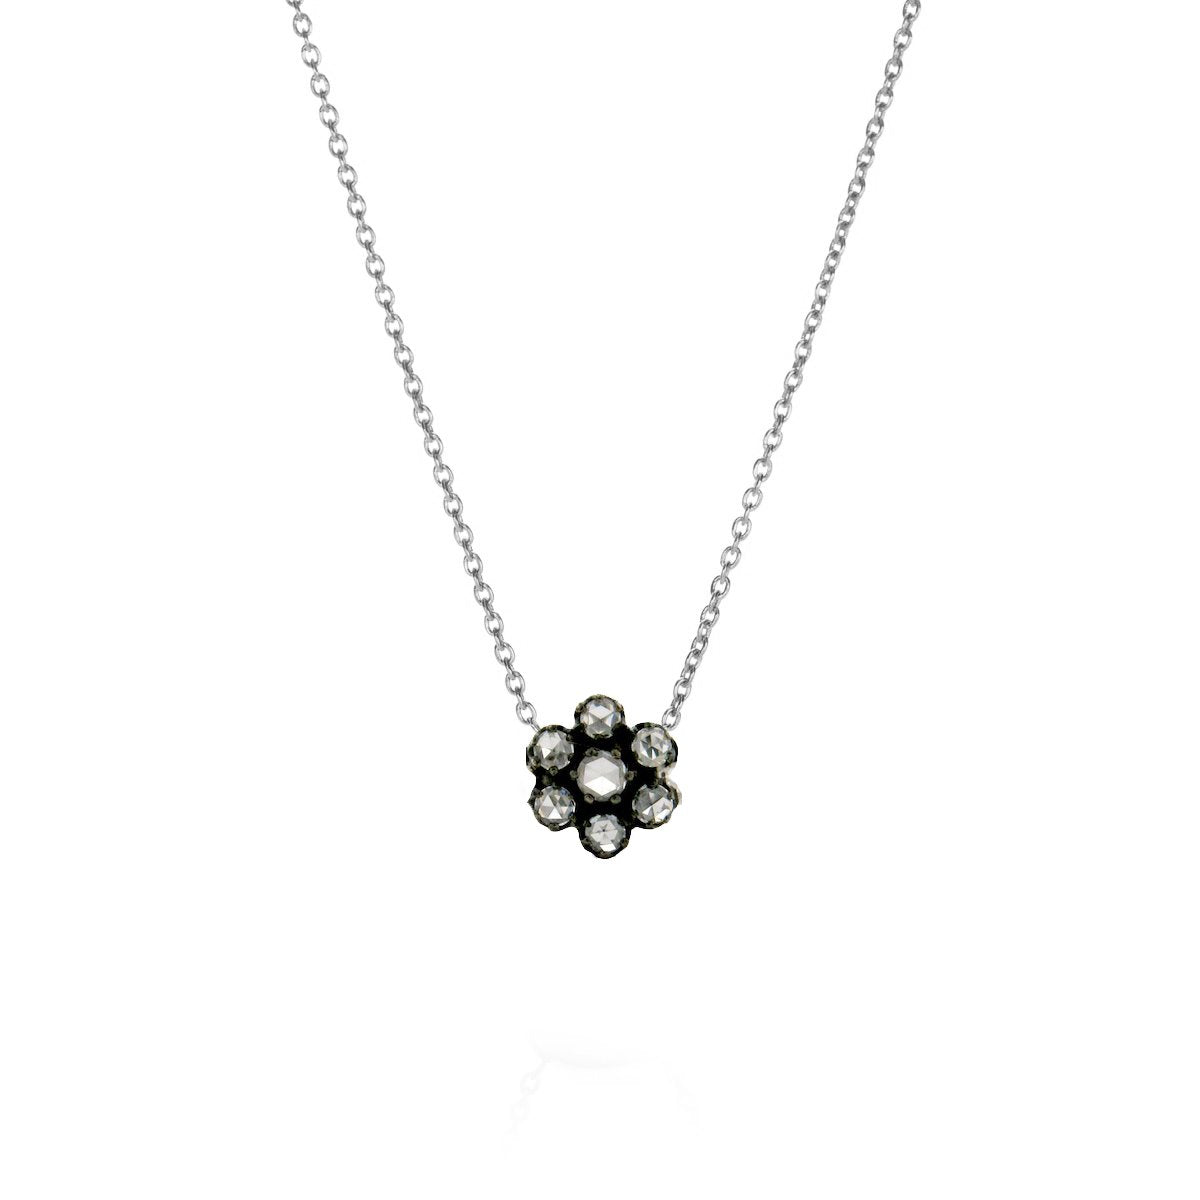 The Little Rose Necklace